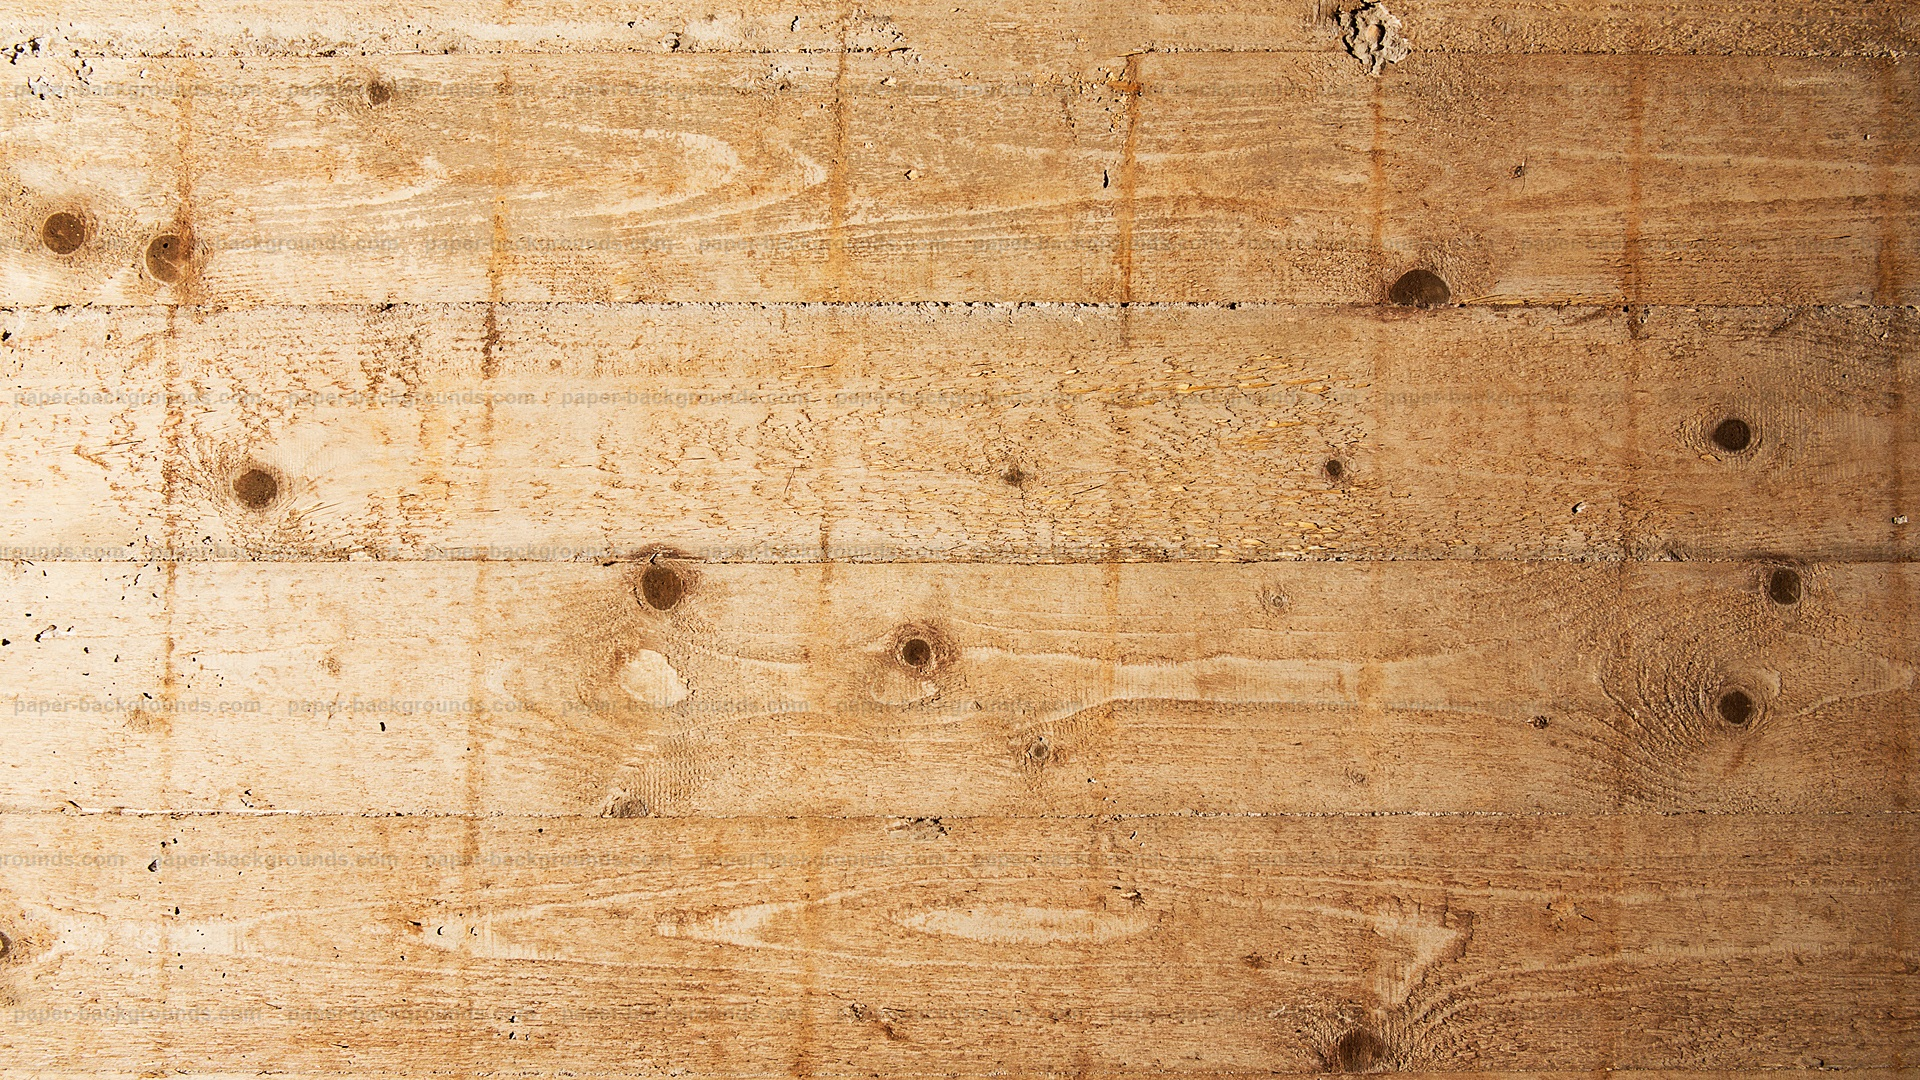 Acsir Academy Of Scientific Innovative Research Vintage Horizontal Wood Boards Texture Hd